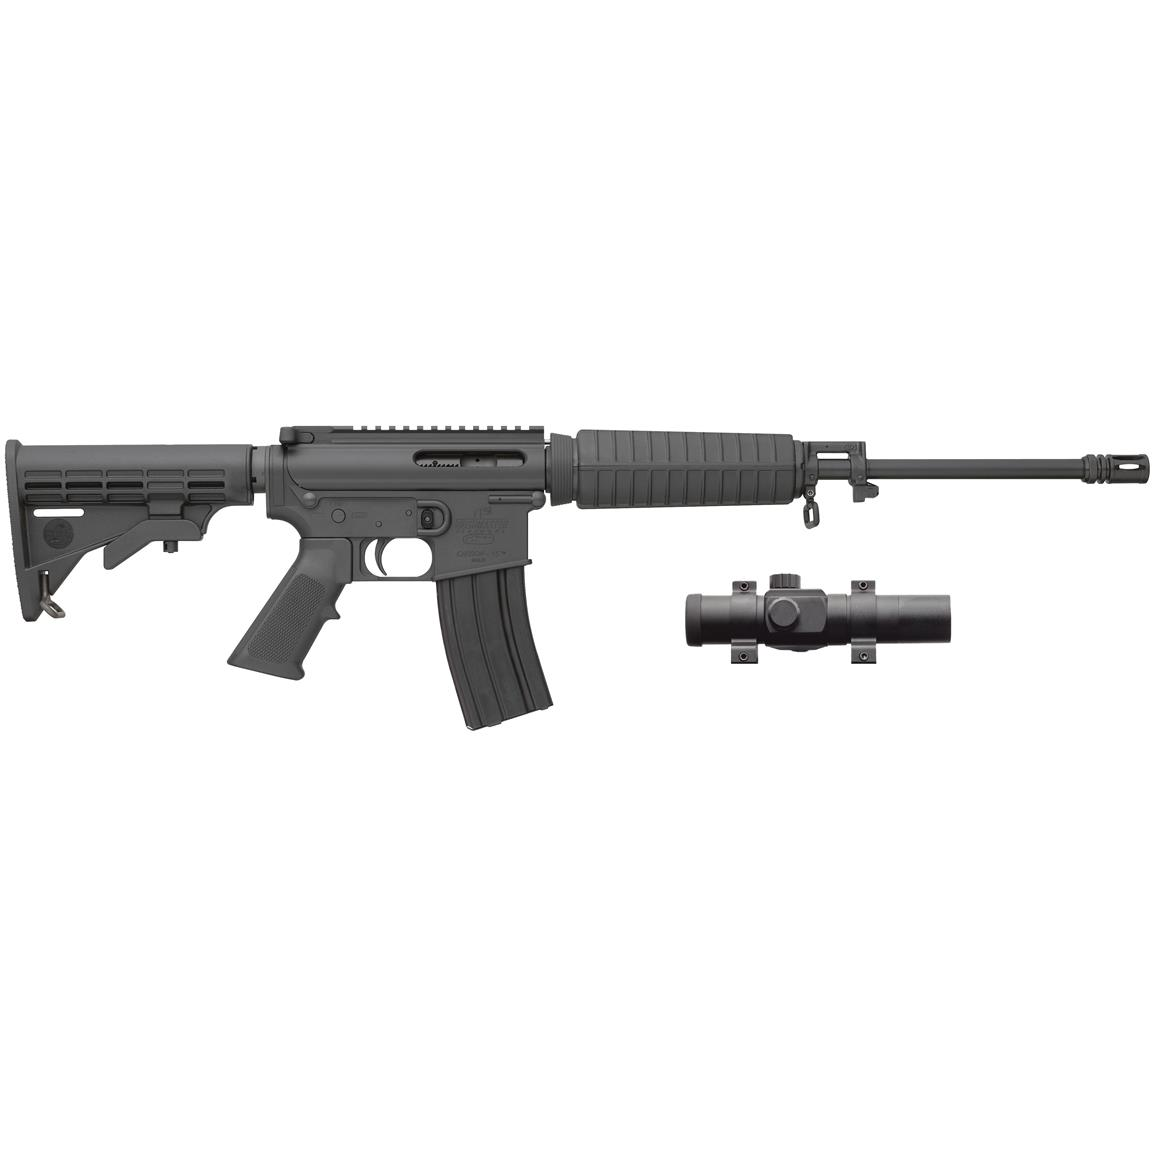 Bushmaster Carbon-15 Superlight ORC, Semi-Automatic, 5.56 NATO/.223 Rem., Red Dot Scope, 30+1 Rounds